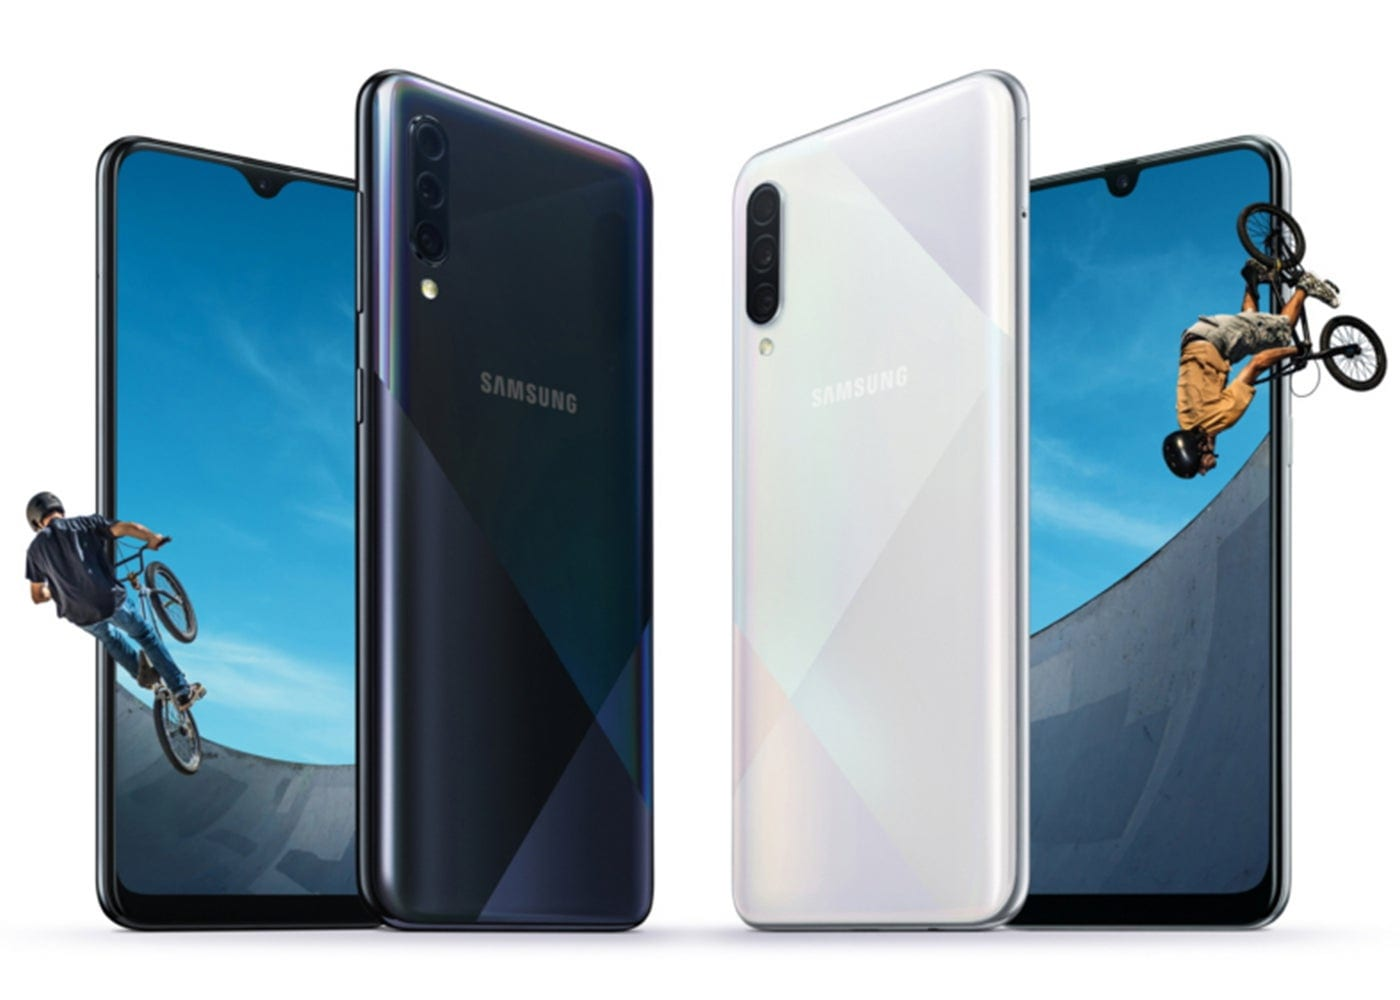 Samsung Galaxy A50s vs A30s: main differences